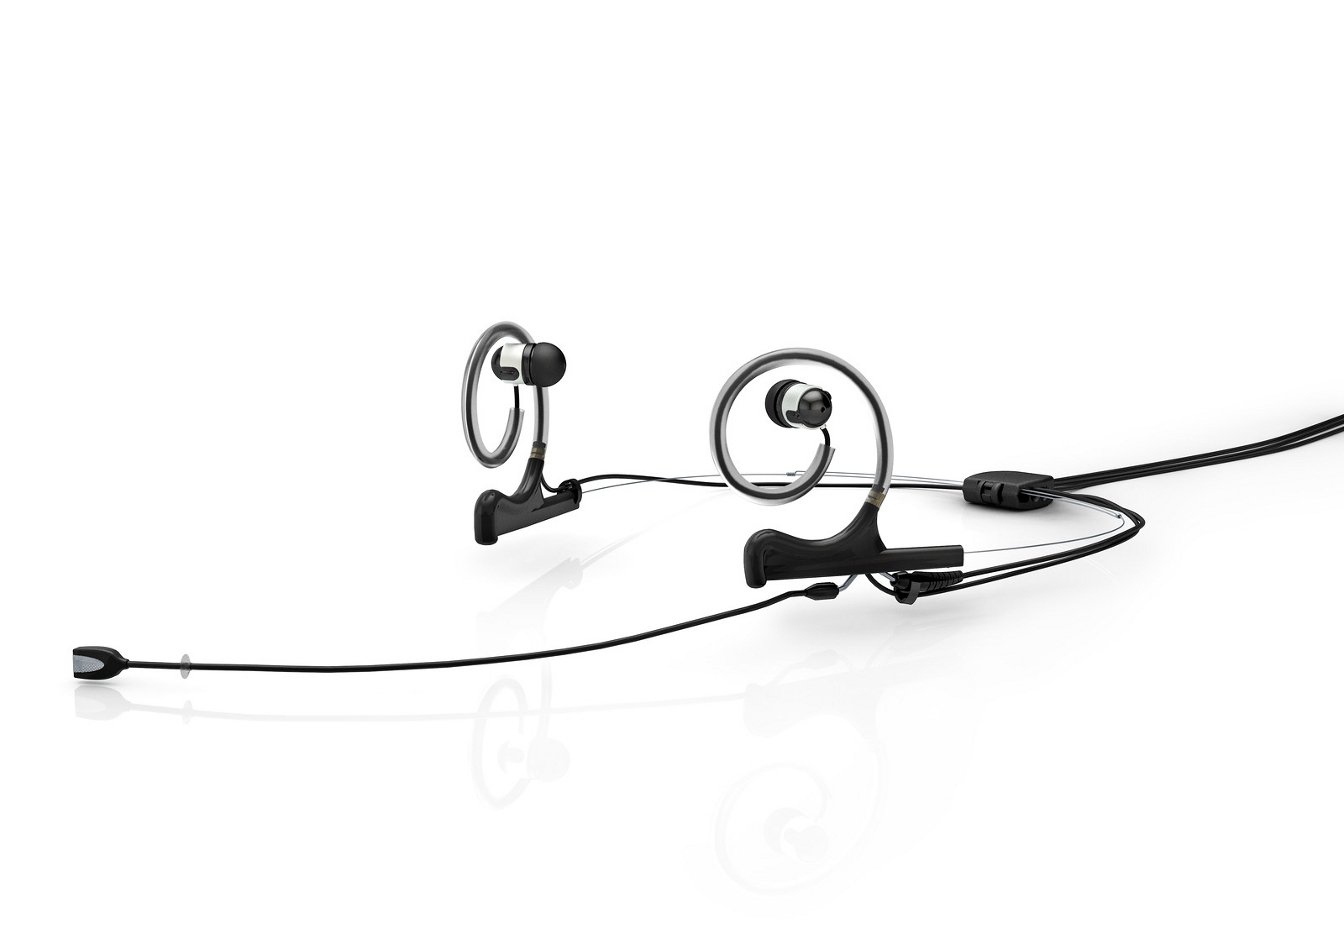 d:fine Dual In-Ear Broadcast Headset Mount, Black